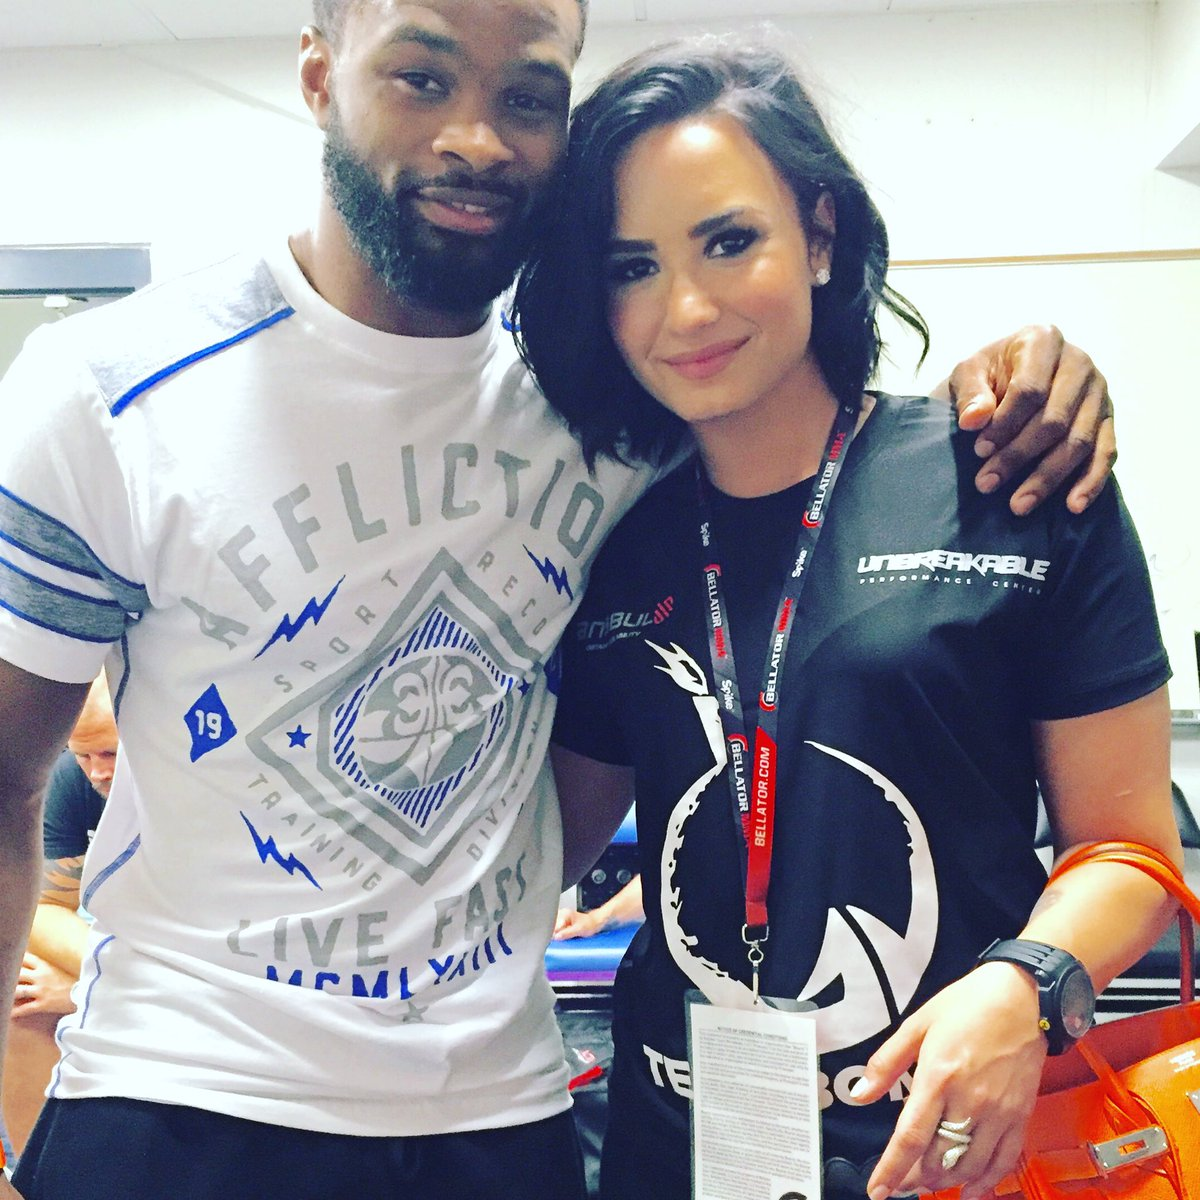 Great seeing @ddlovato at the fights. She looks like a fighter when I see her train at @Unbreakable